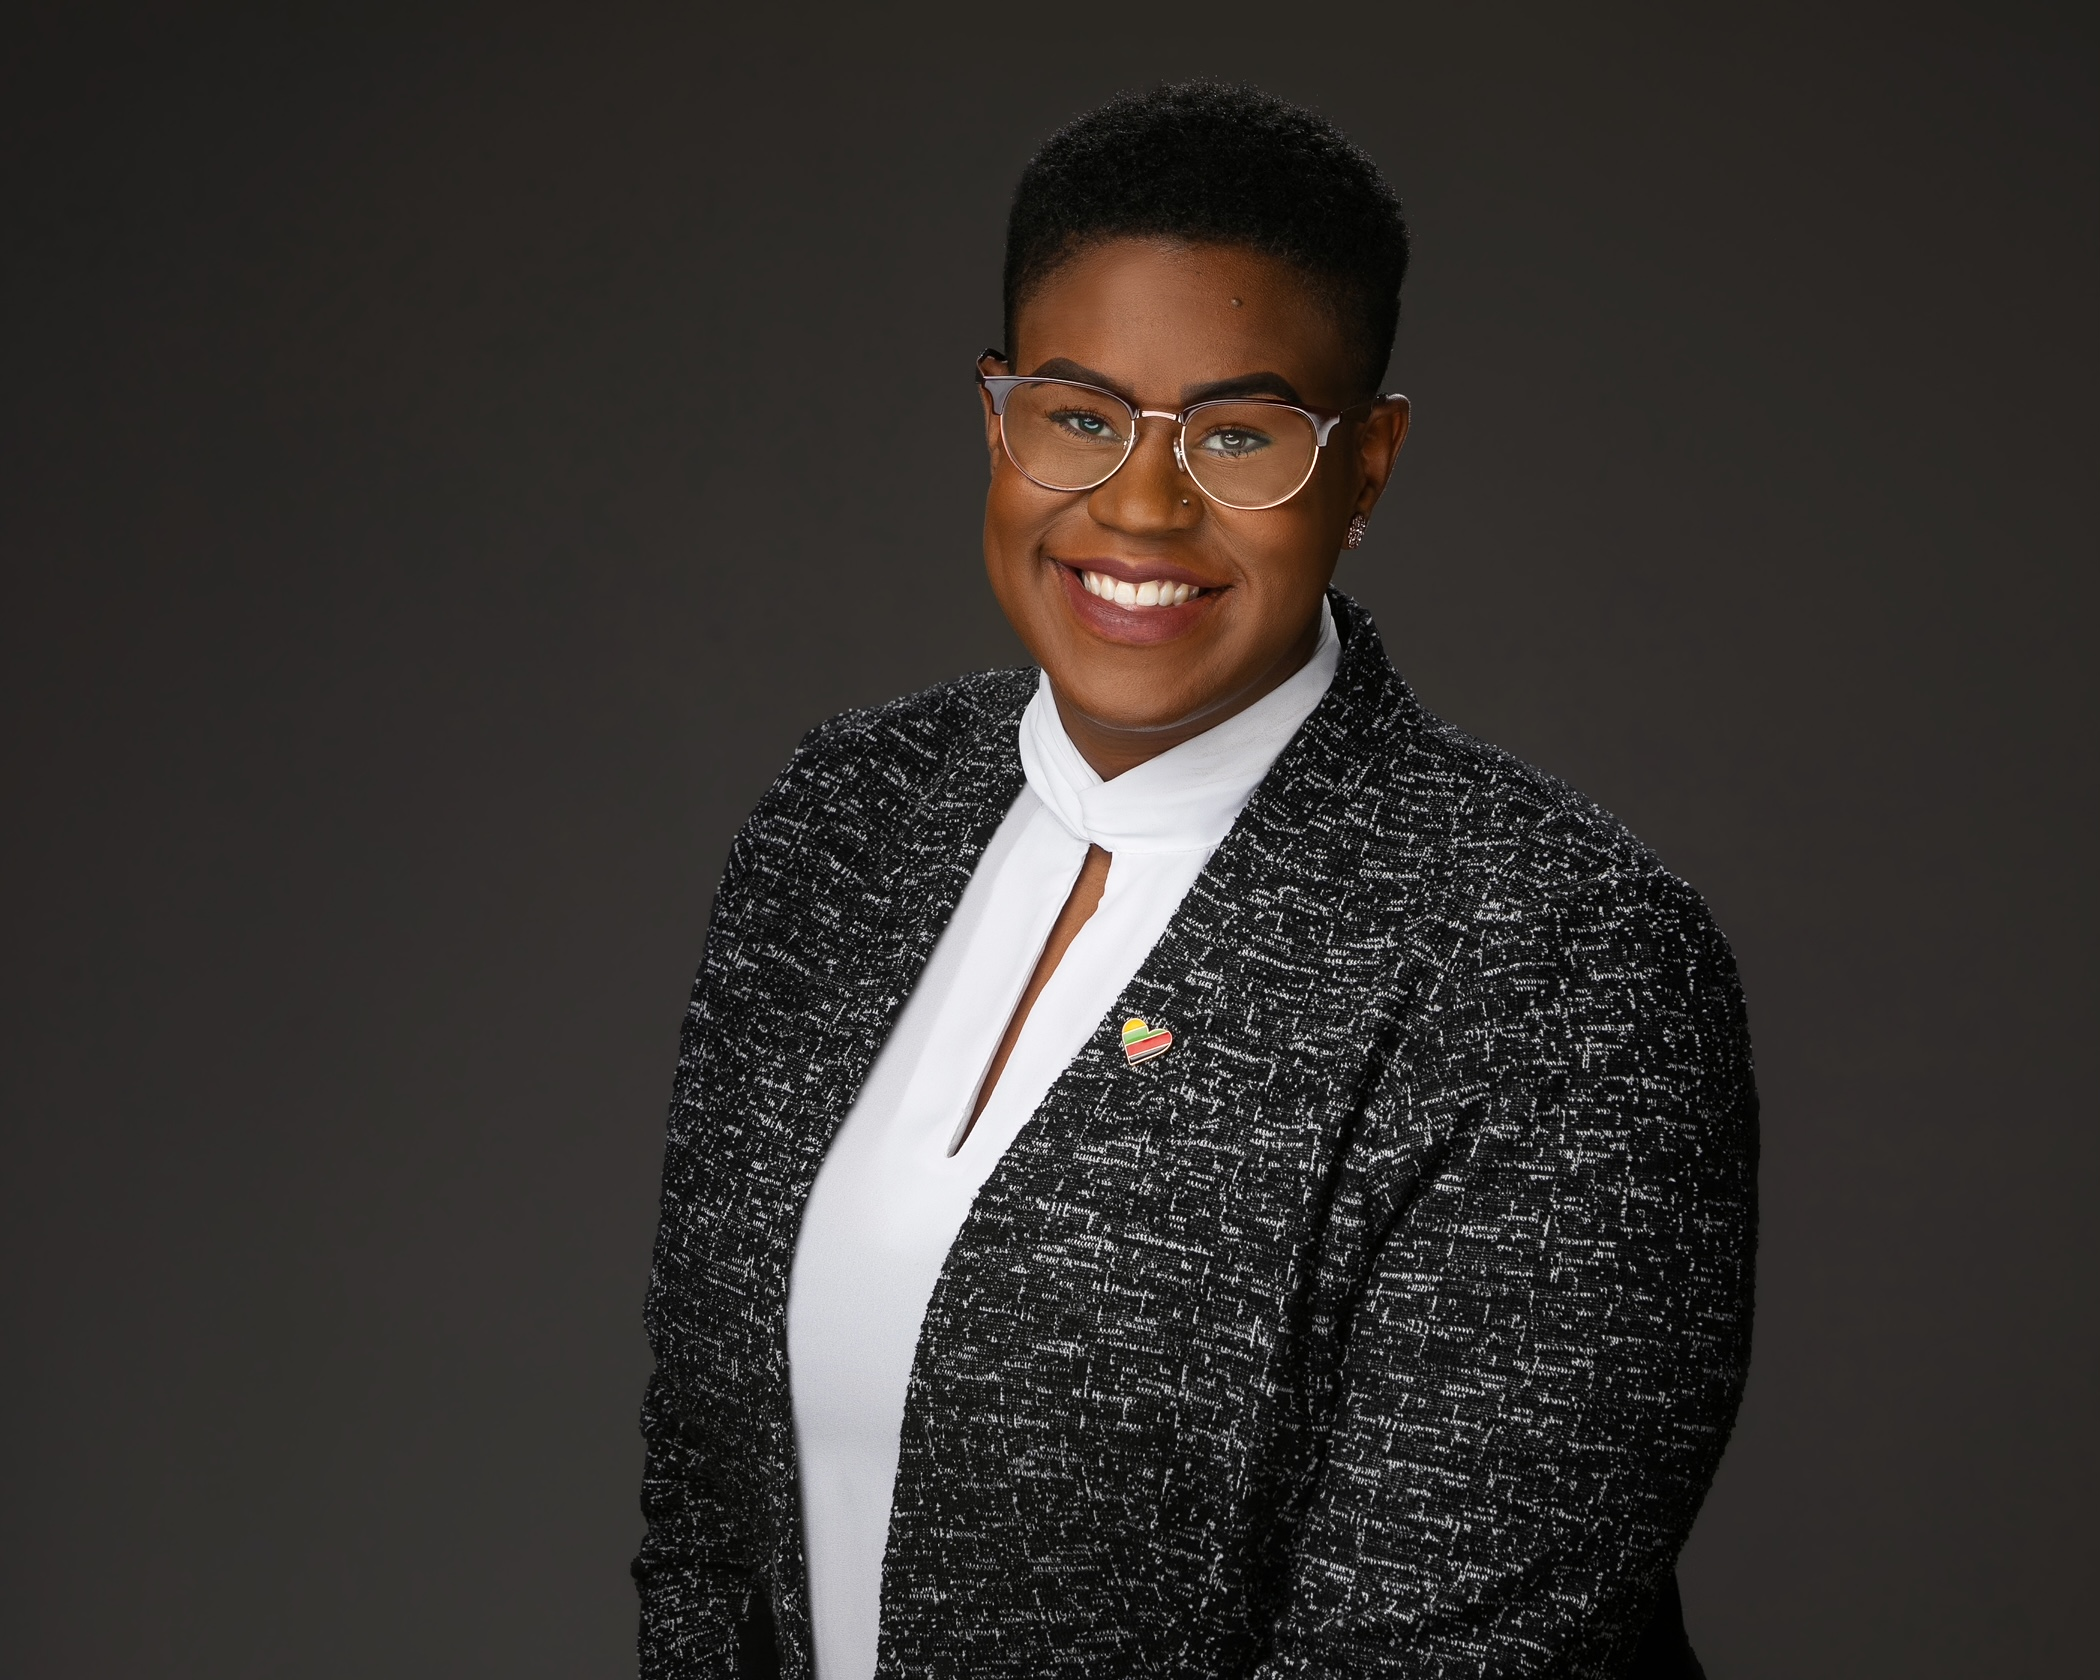 Kayla Jackson-Williams announced her candidacy for a Boone County Circuit judge for family court.